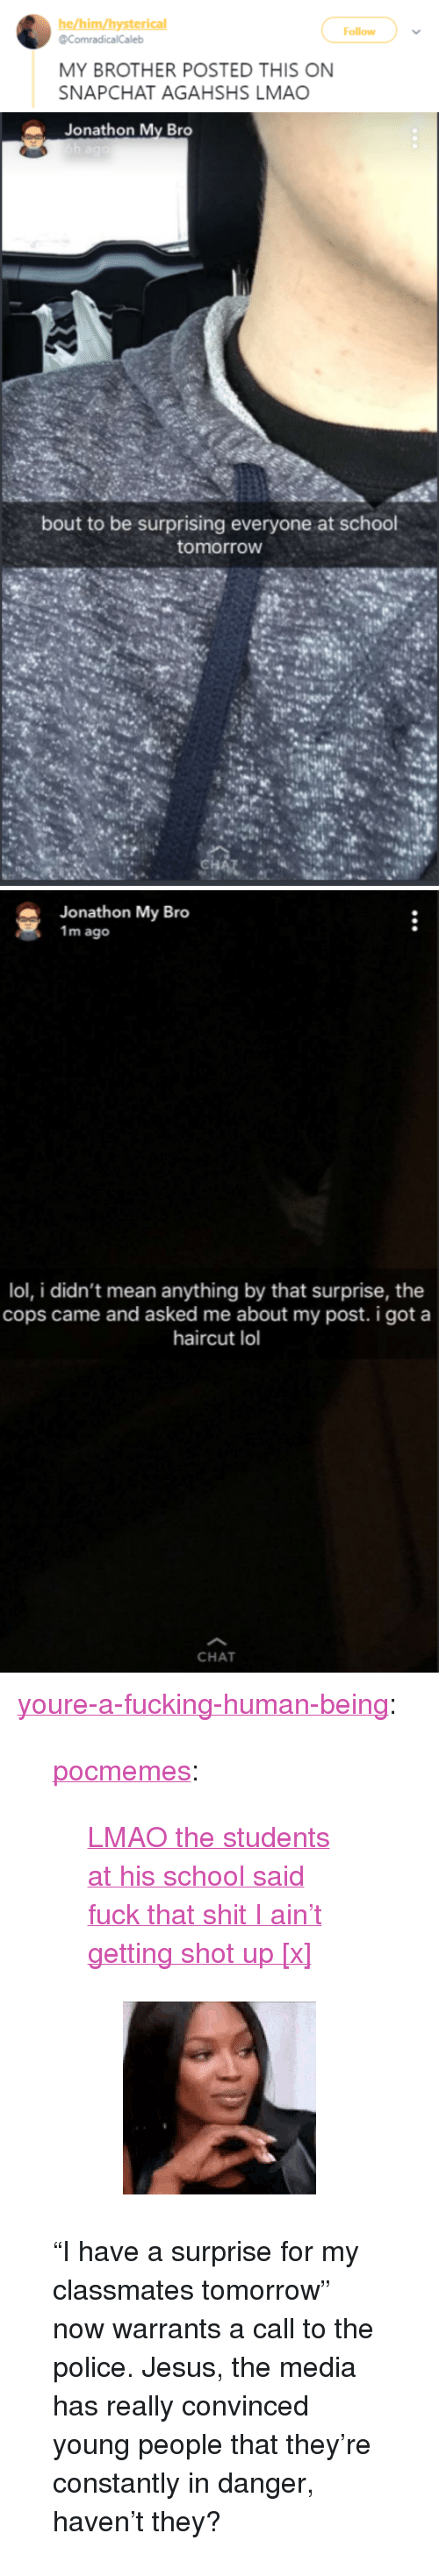 "Fucking, Gif, and Haircut: he/him/hysterical  @ComradicalCaleb  Follow  MY BROTHER POSTED THIS ON  SNAPCHAT AGAHSHS LMAO   Jonathon My Bro  bout to be surprising everyone at school  tomorrow   Jonathon My Bro  1m ago  lol, i didn't mean anything by that surprise, the  cops came and asked me about my post. i got a  haircut lol  CHAT <p><a href=""http://youre-a-fucking-human-being.tumblr.com/post/172355196711/pocmemes-lmao-the-students-at-his-school-said"" class=""tumblr_blog"">youre-a-fucking-human-being</a>:</p><blockquote> <p><a href=""https://pocmemes.tumblr.com/post/172347414533/lmao-the-students-at-his-school-said-fuck-that"" class=""tumblr_blog"">pocmemes</a>:</p> <blockquote> <p><a href=""https://twitter.com/ComradicalCaleb/status/978482124675276802"">  LMAO the students at his school said fuck that shit I ain't getting shot up [x]</a></p> <figure data-orig-width=""220"" data-orig-height=""220""><img src=""https://78.media.tumblr.com/c0c6e386523db553c65e28b8703f10b6/tumblr_inline_p6b7tudyHp1ty99rh_540.gif"" alt=""image"" data-orig-width=""220"" data-orig-height=""220""/></figure></blockquote>  <p>""I have a surprise for my classmates tomorrow"" now warrants a call to the police. Jesus, the media has really convinced young people that they're constantly in danger, haven't they? </p> </blockquote>"